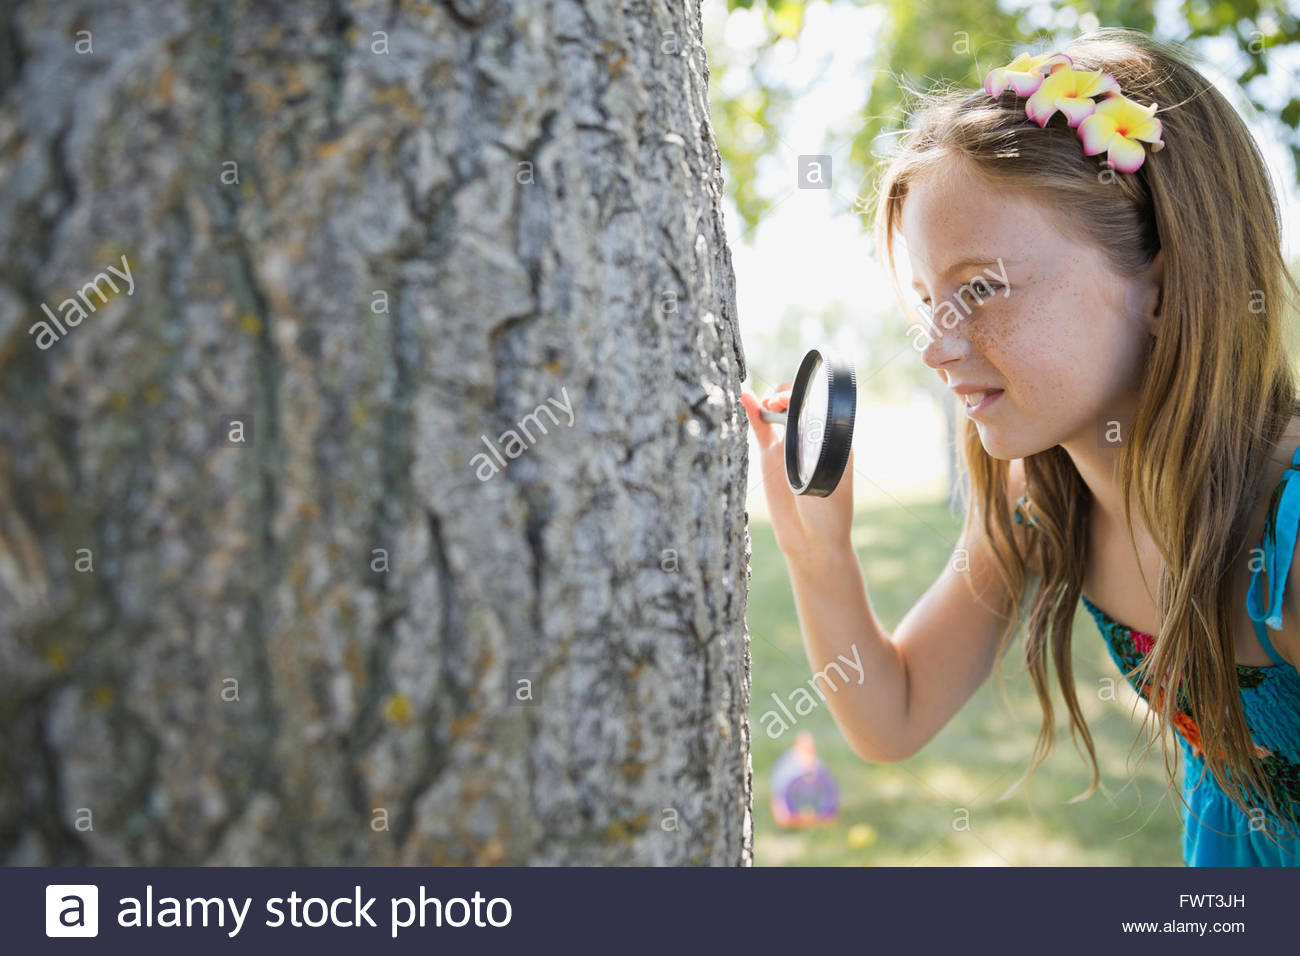 Little girl looking at tree bark through magnifying glass - Stock Image